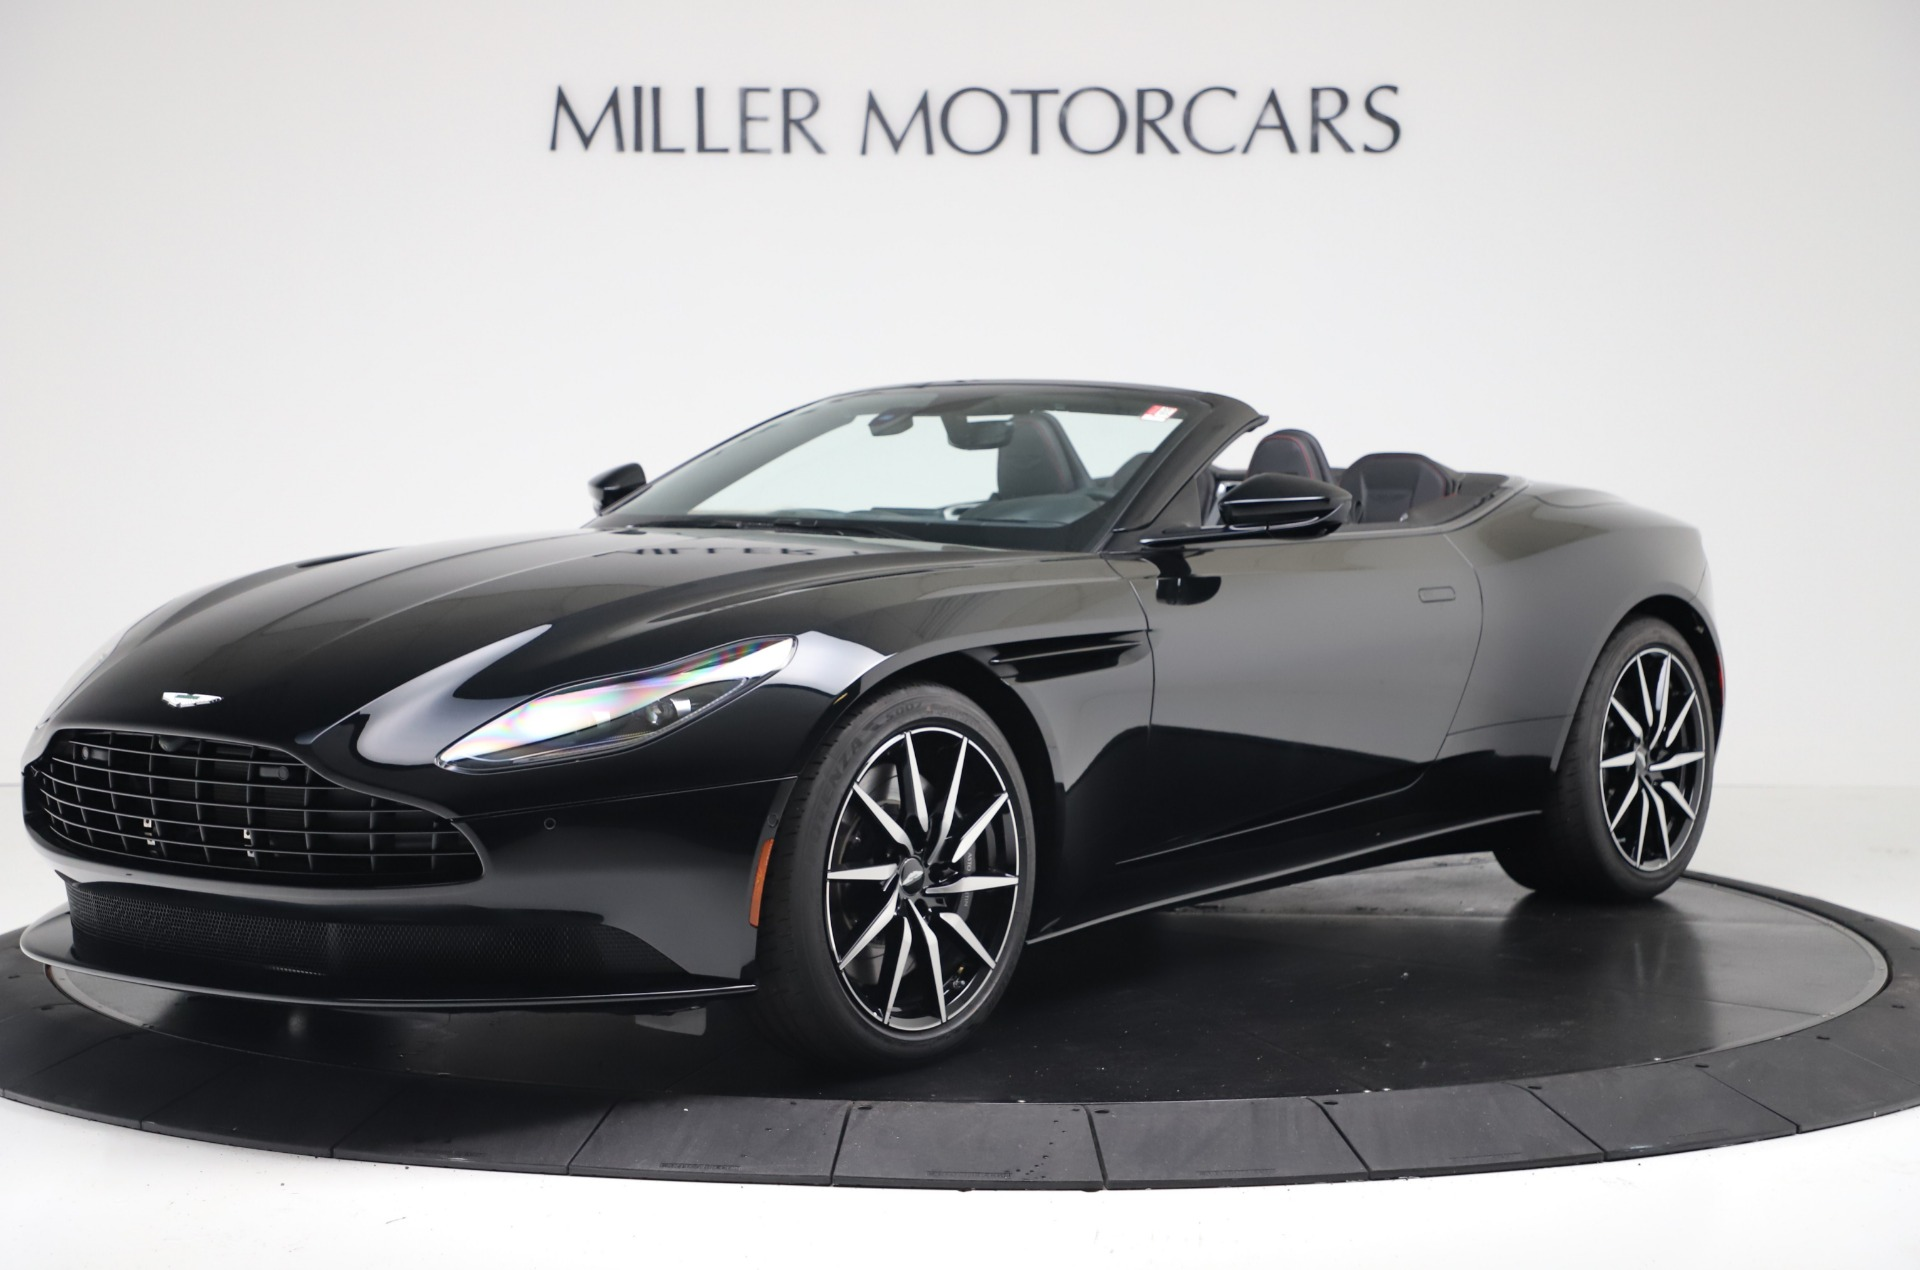 New 2020 Aston Martin Db11 Convertible For Sale 250 446 Miller Motorcars Stock A1385